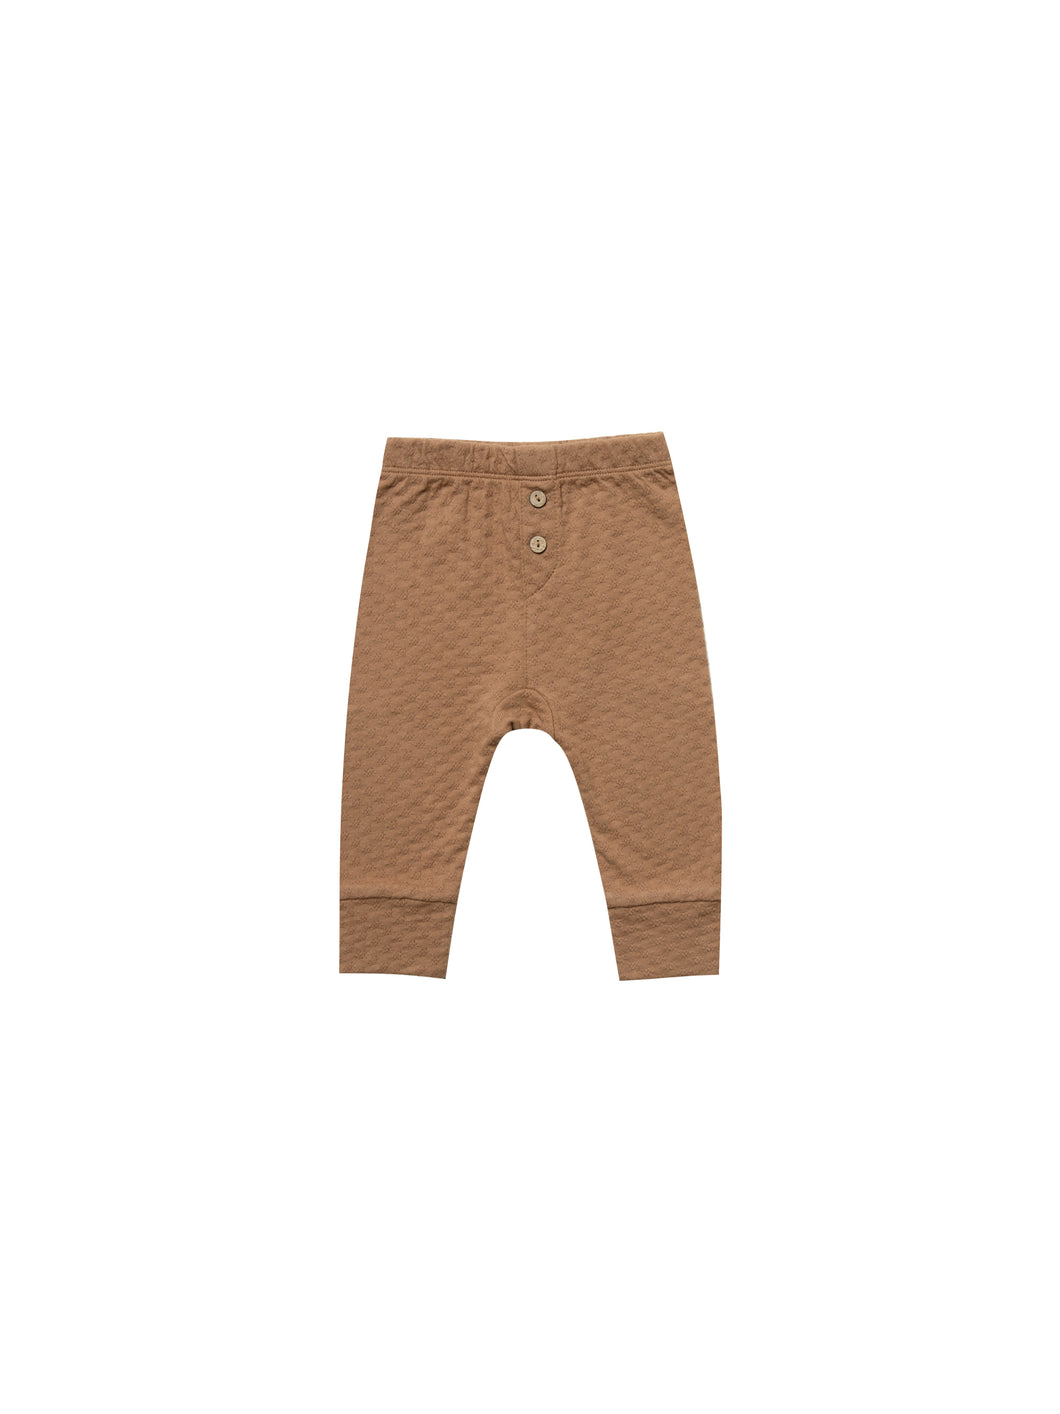 Pointelle Pajama Pant - Copper